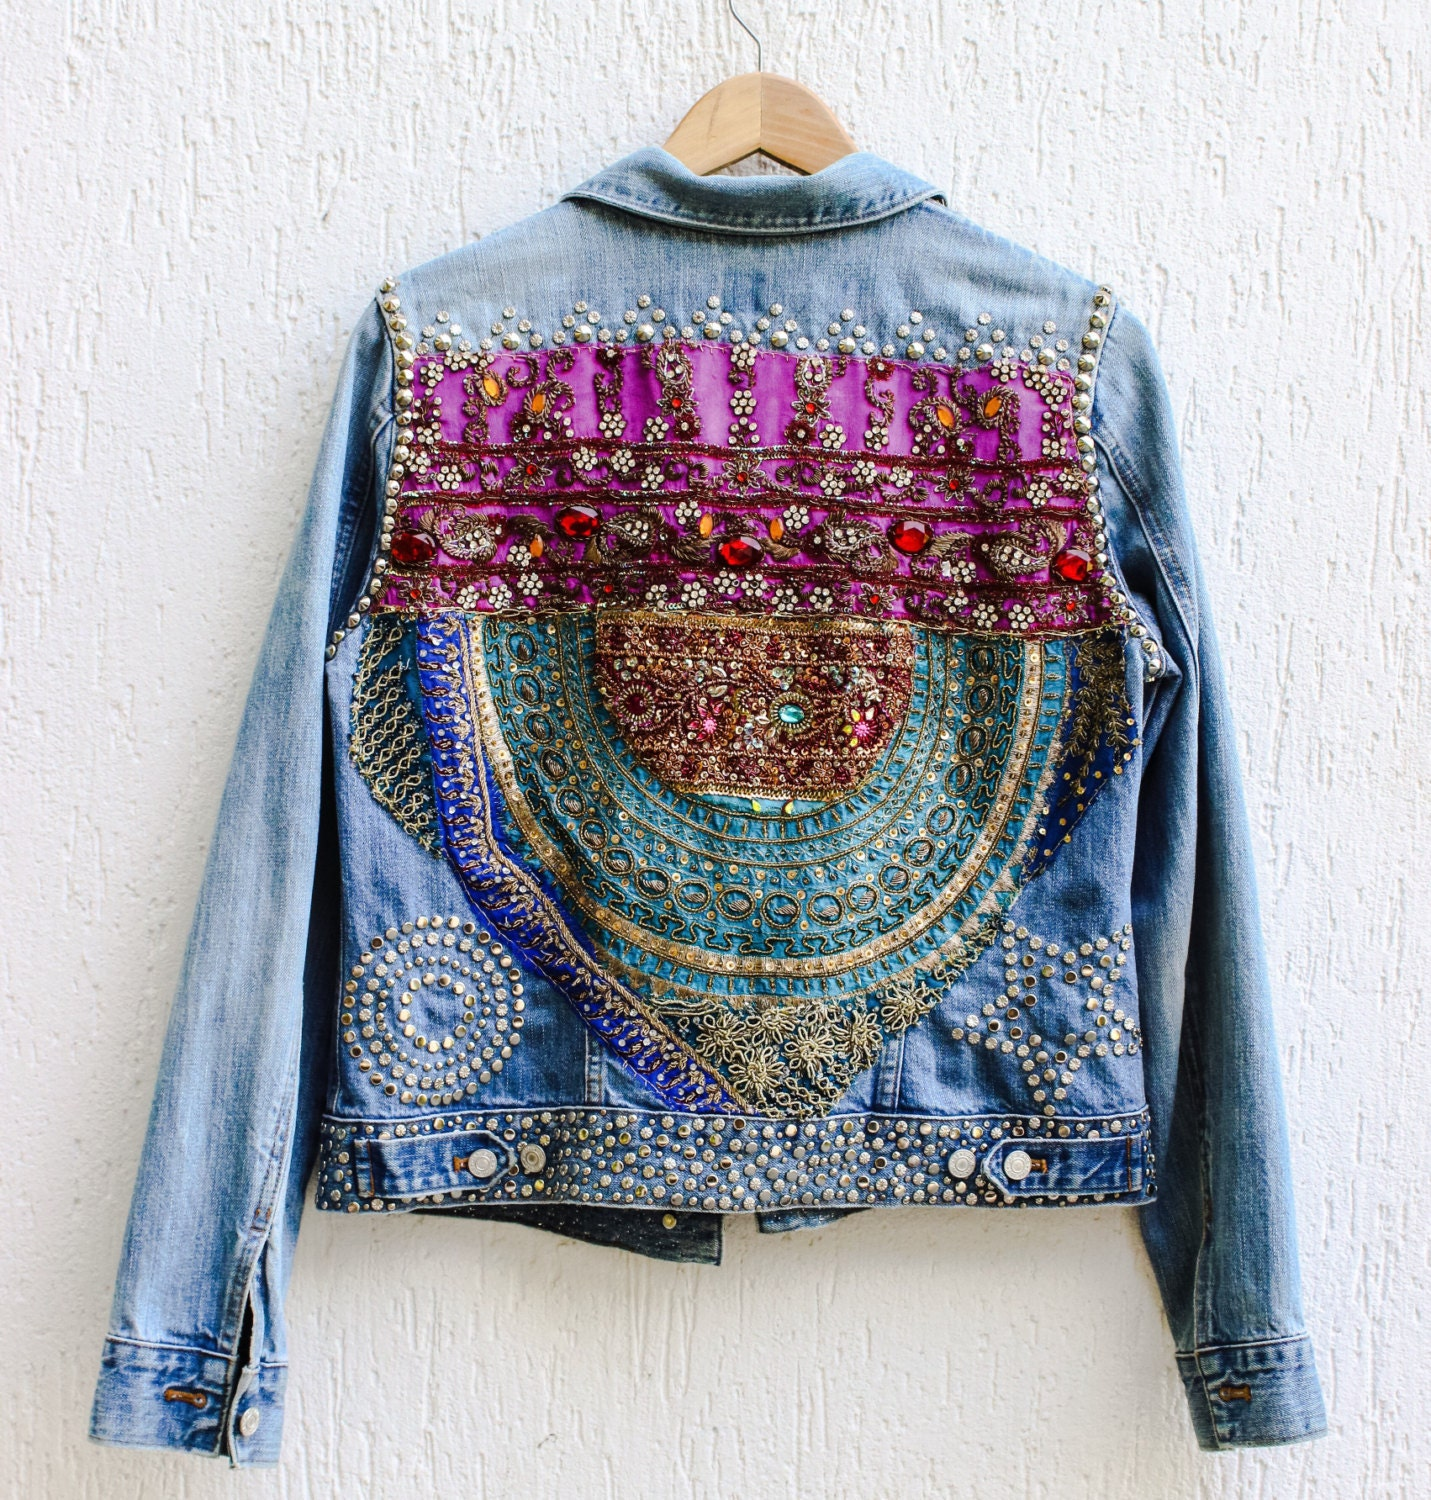 Boho jacket vintage embroidery jean embroidered